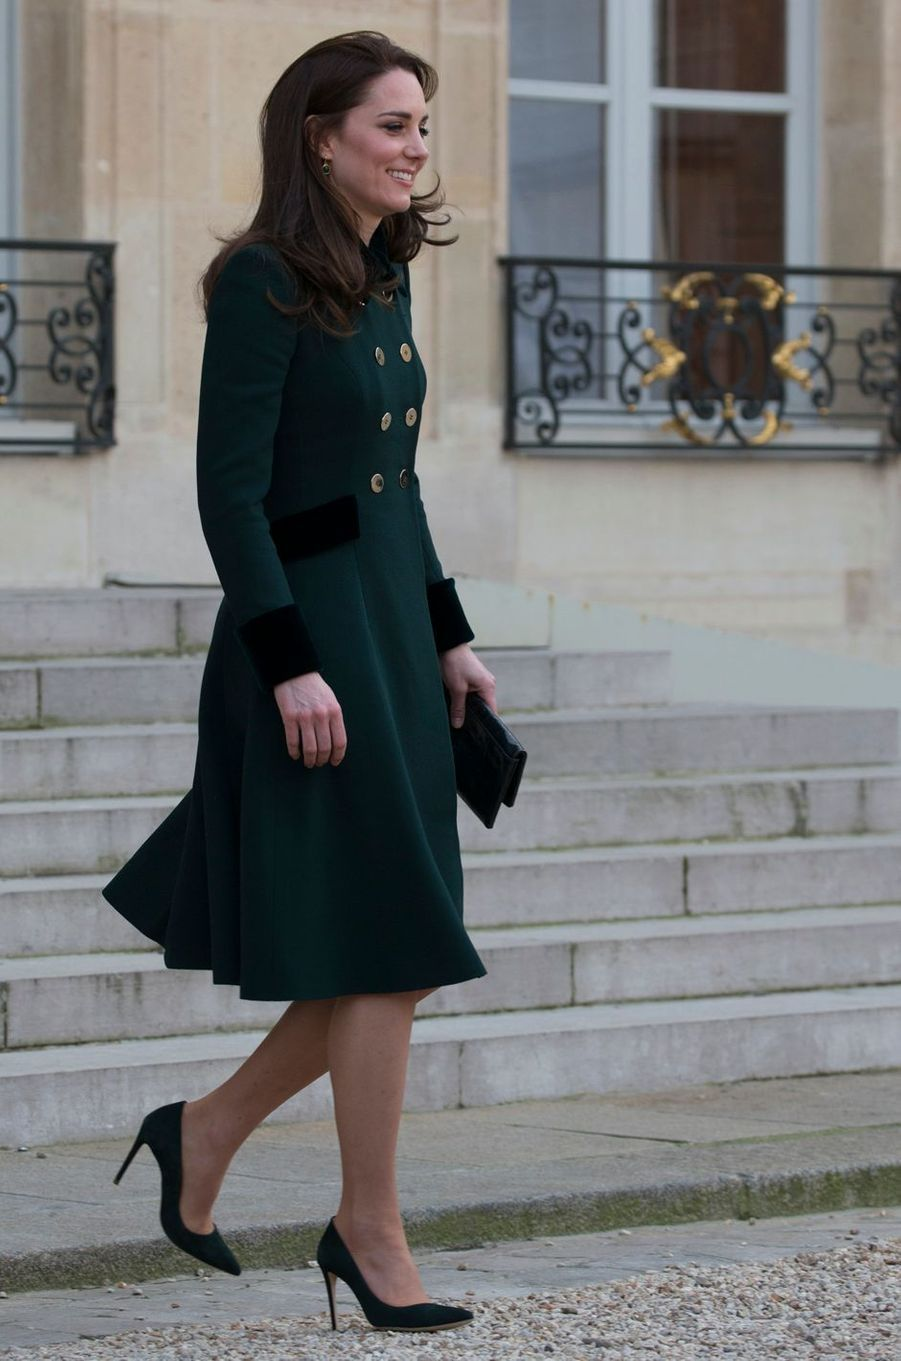 La duchesse de Cambridge, née Kate Middleton, à Paris le 17 mars 2017